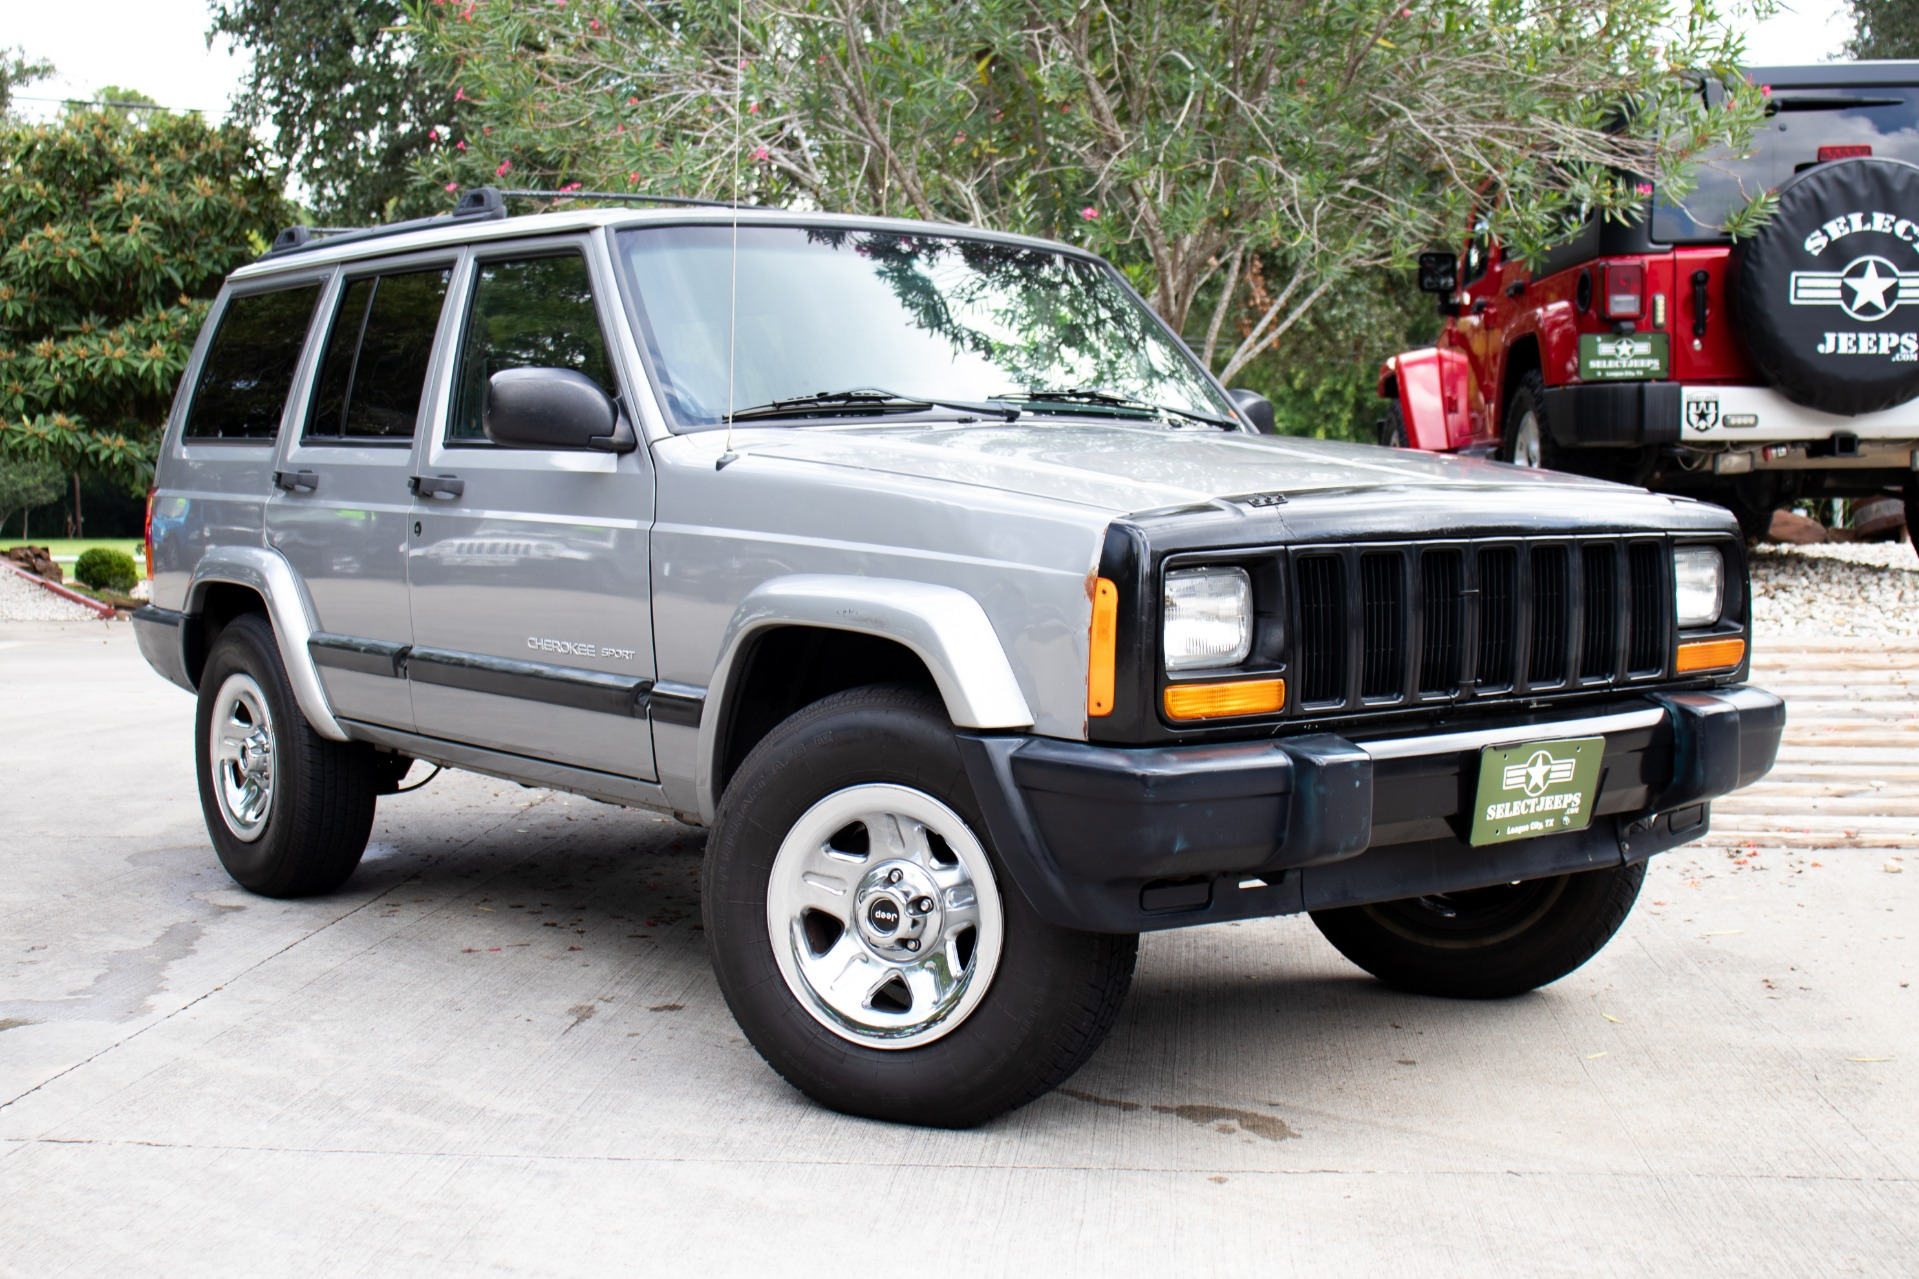 Used 2001 Jeep Cherokee 4dr Sport For Sale 4 995 Select Jeeps Inc Stock 535118